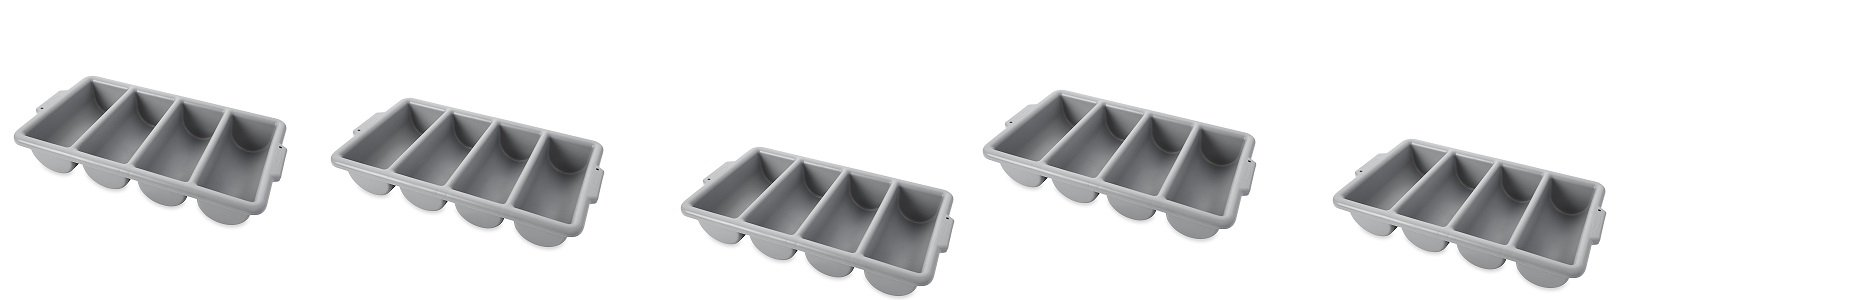 Rubbermaid Commercial FG336200GRAY 4-Compartment Cutlery Bin, Gray (5 PACK,) by Rubbermaid Commercial Products